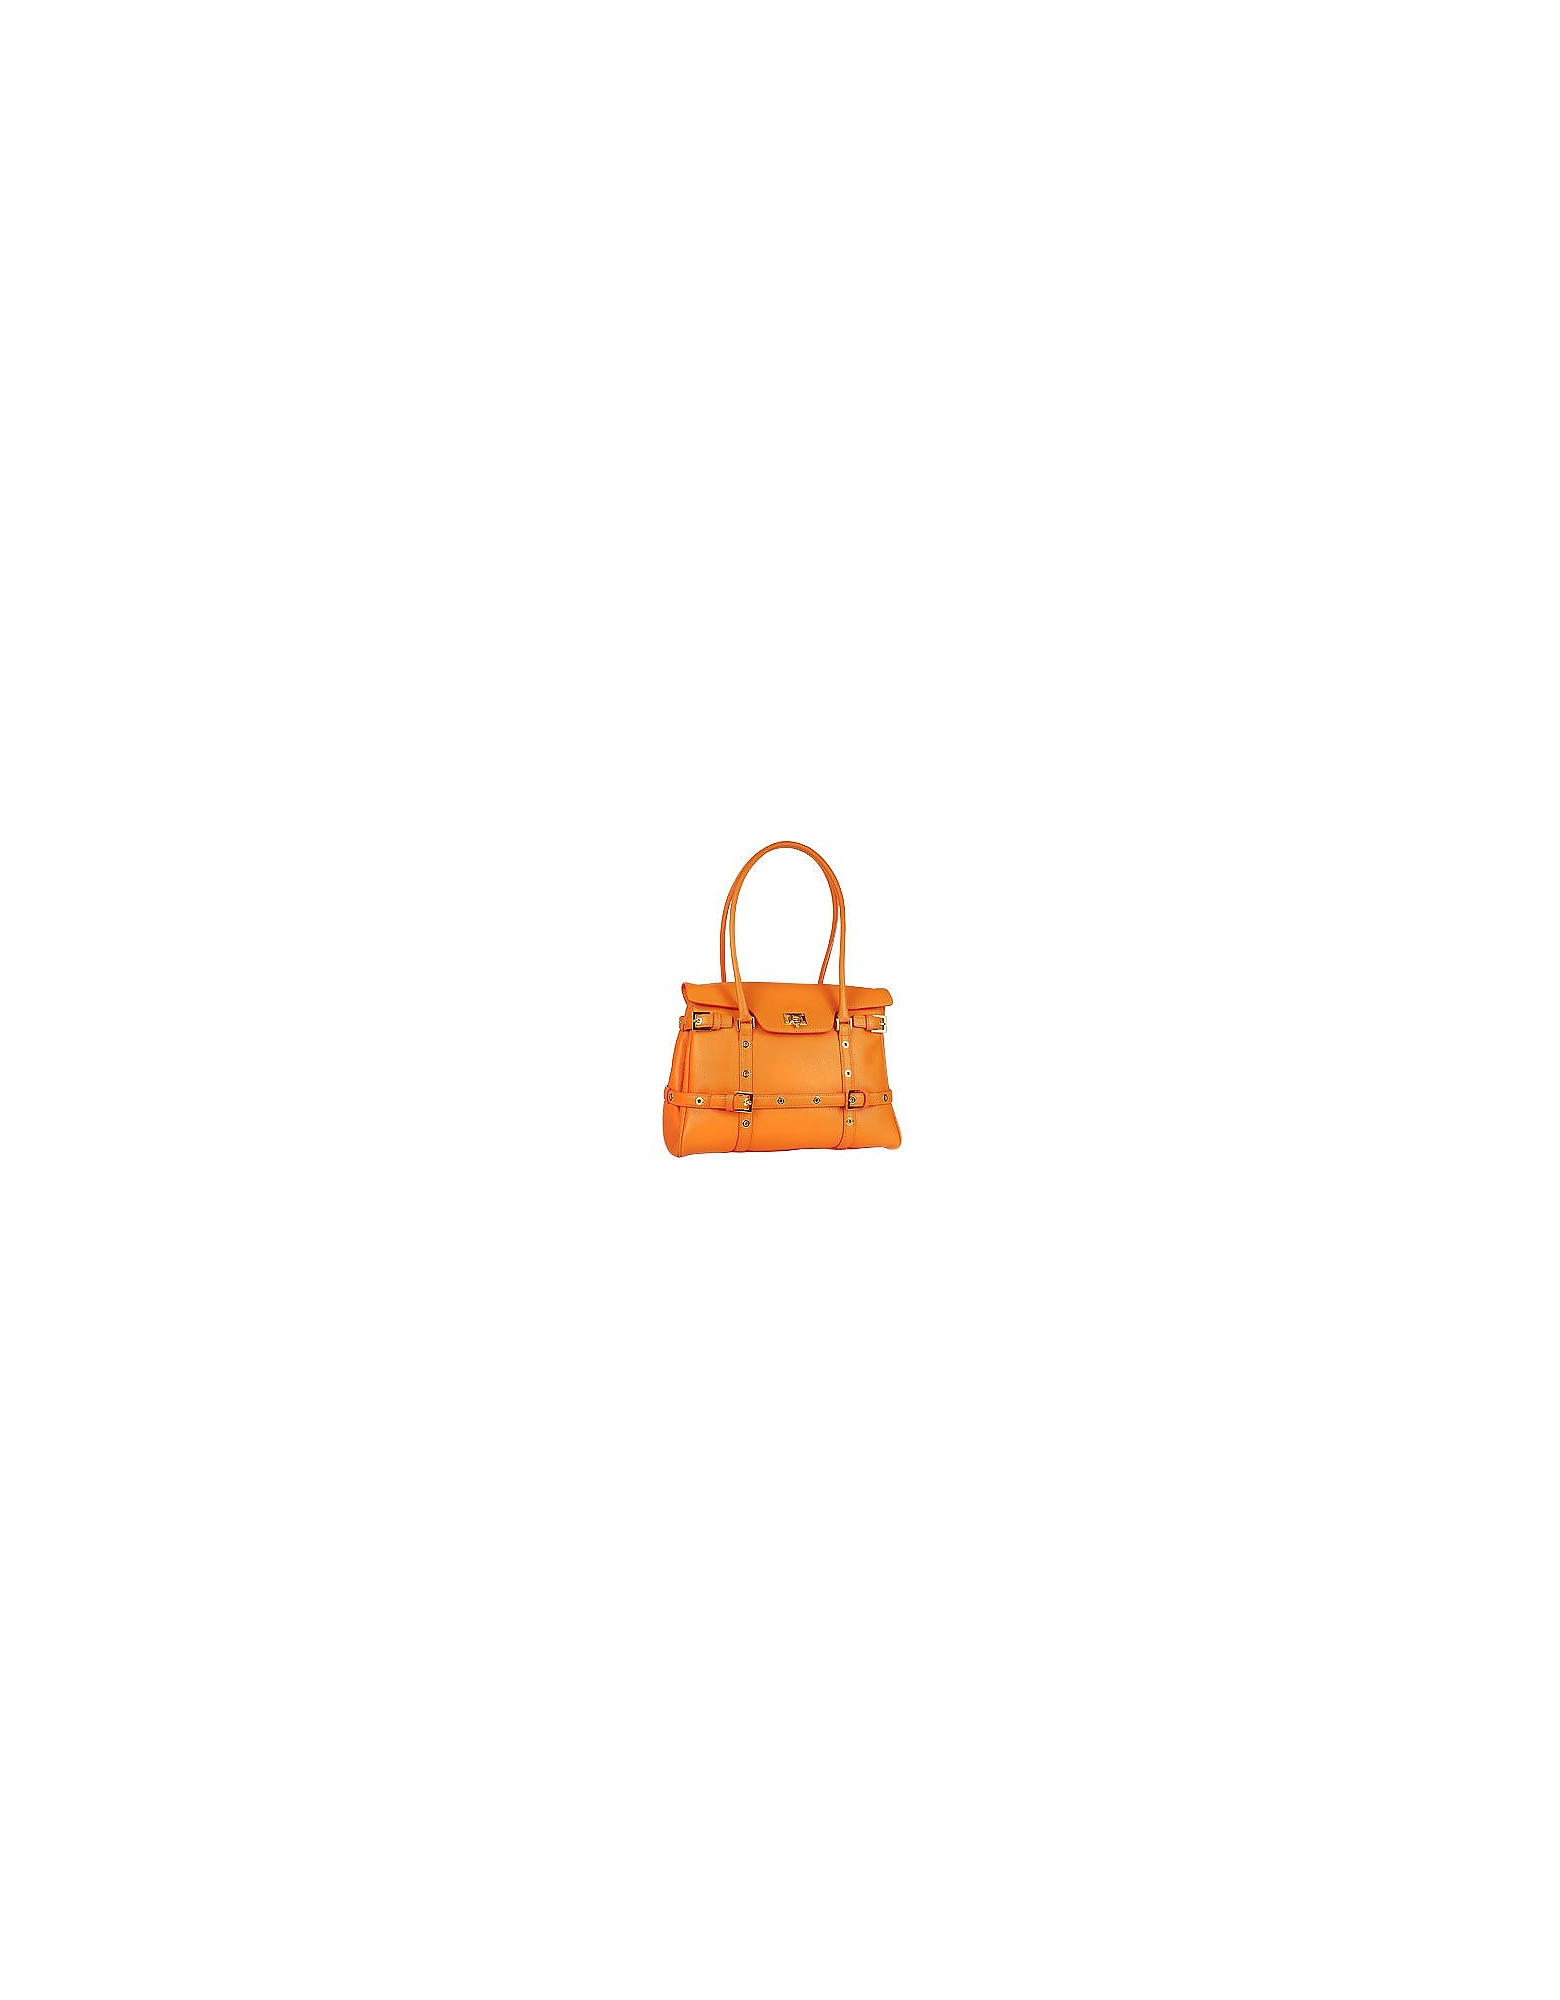 Fontanelli Handbags, Orange Buckled Calf Leather Satchel Bag